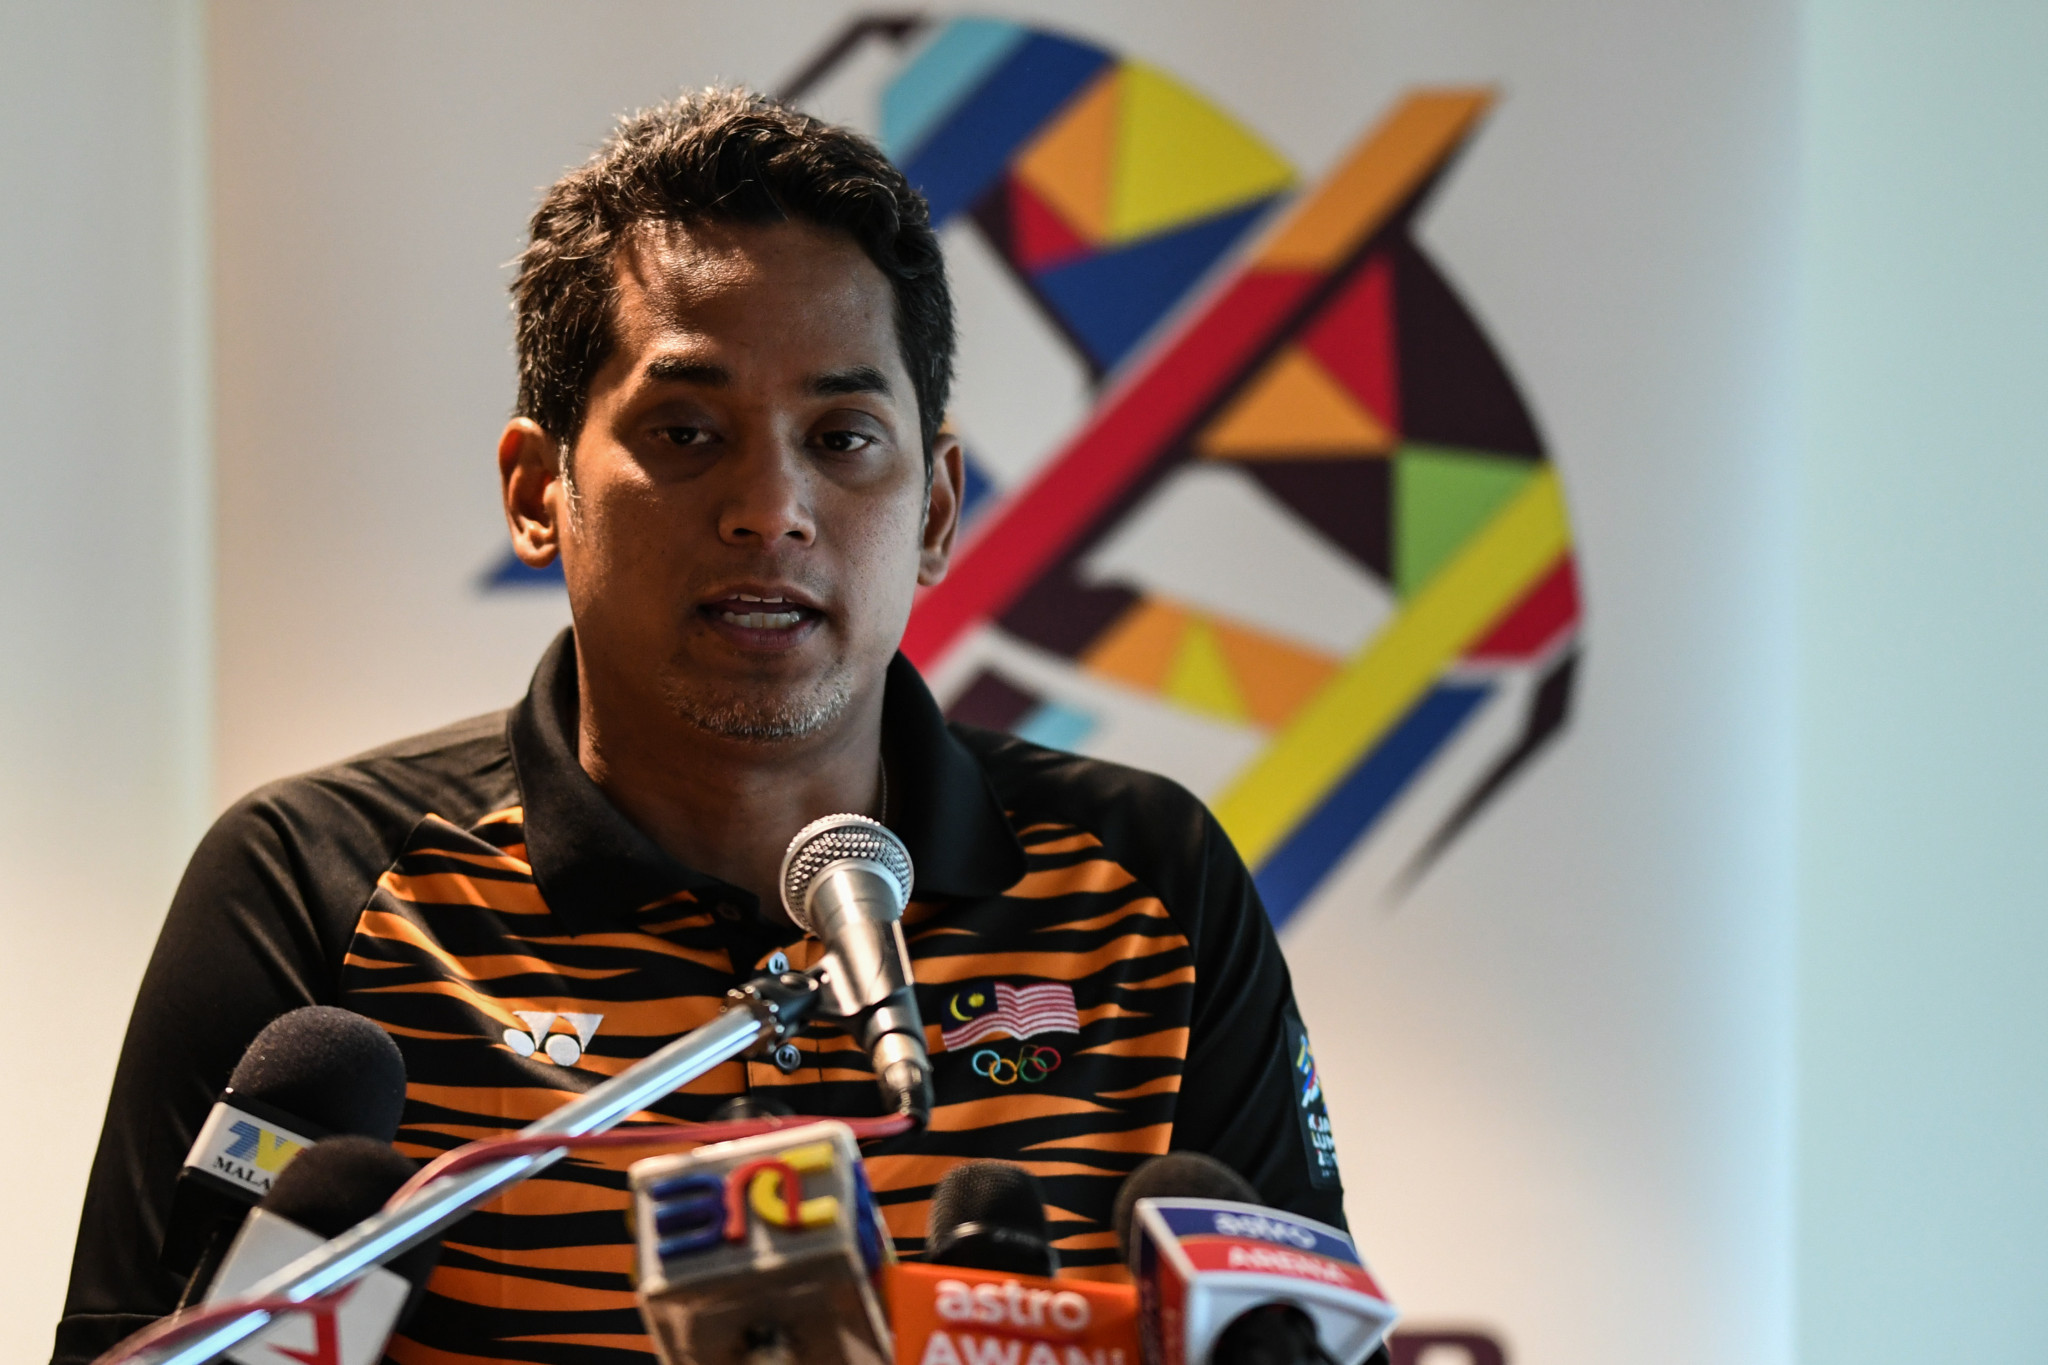 Malaysian Sports Minister to hold talks with Prime Minister about bidding for 2022 Commonwealth Games